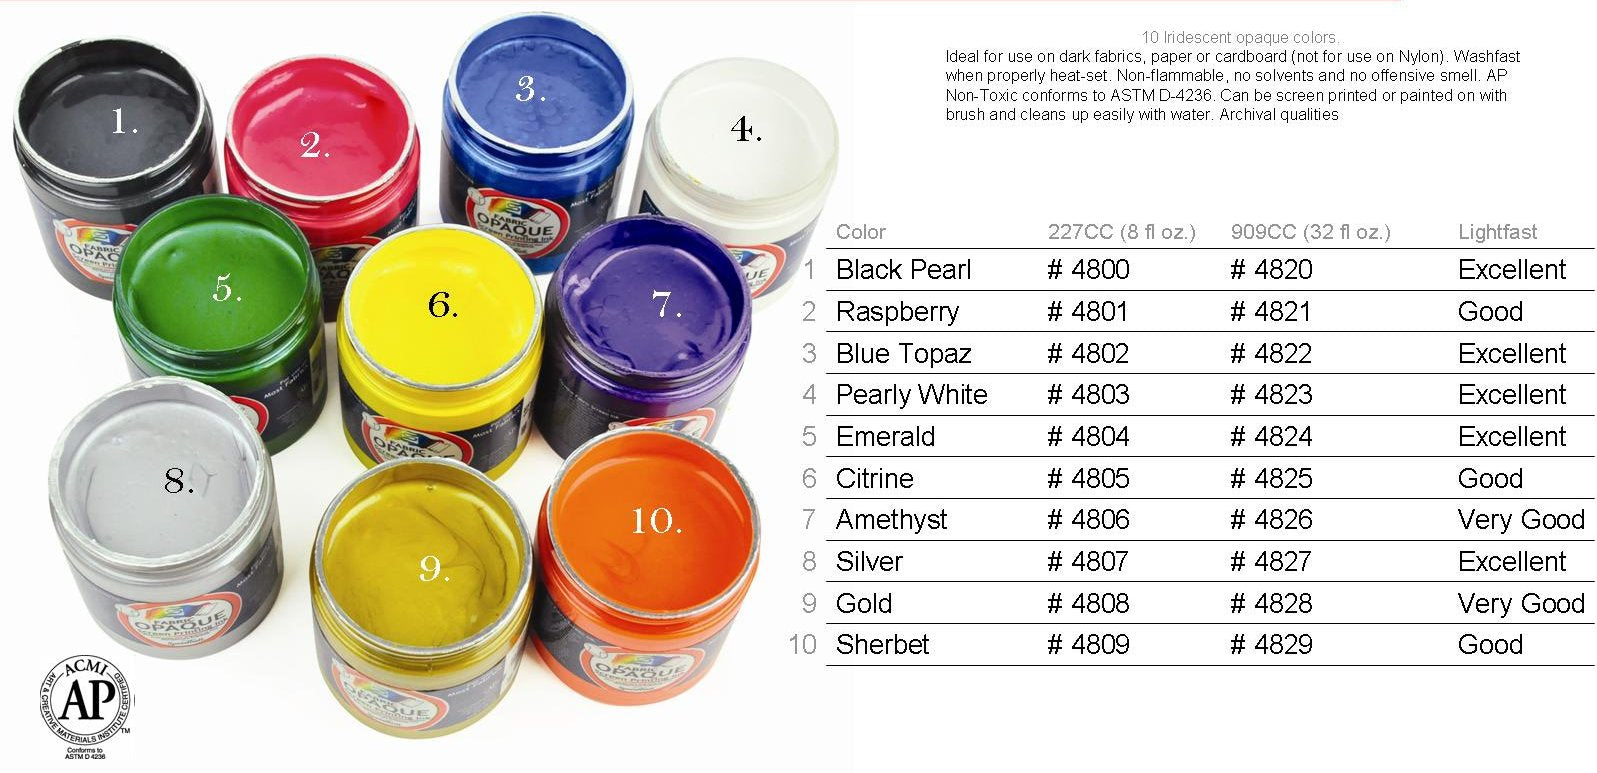 speedball opaque screen printing inks color chart - Printing Color